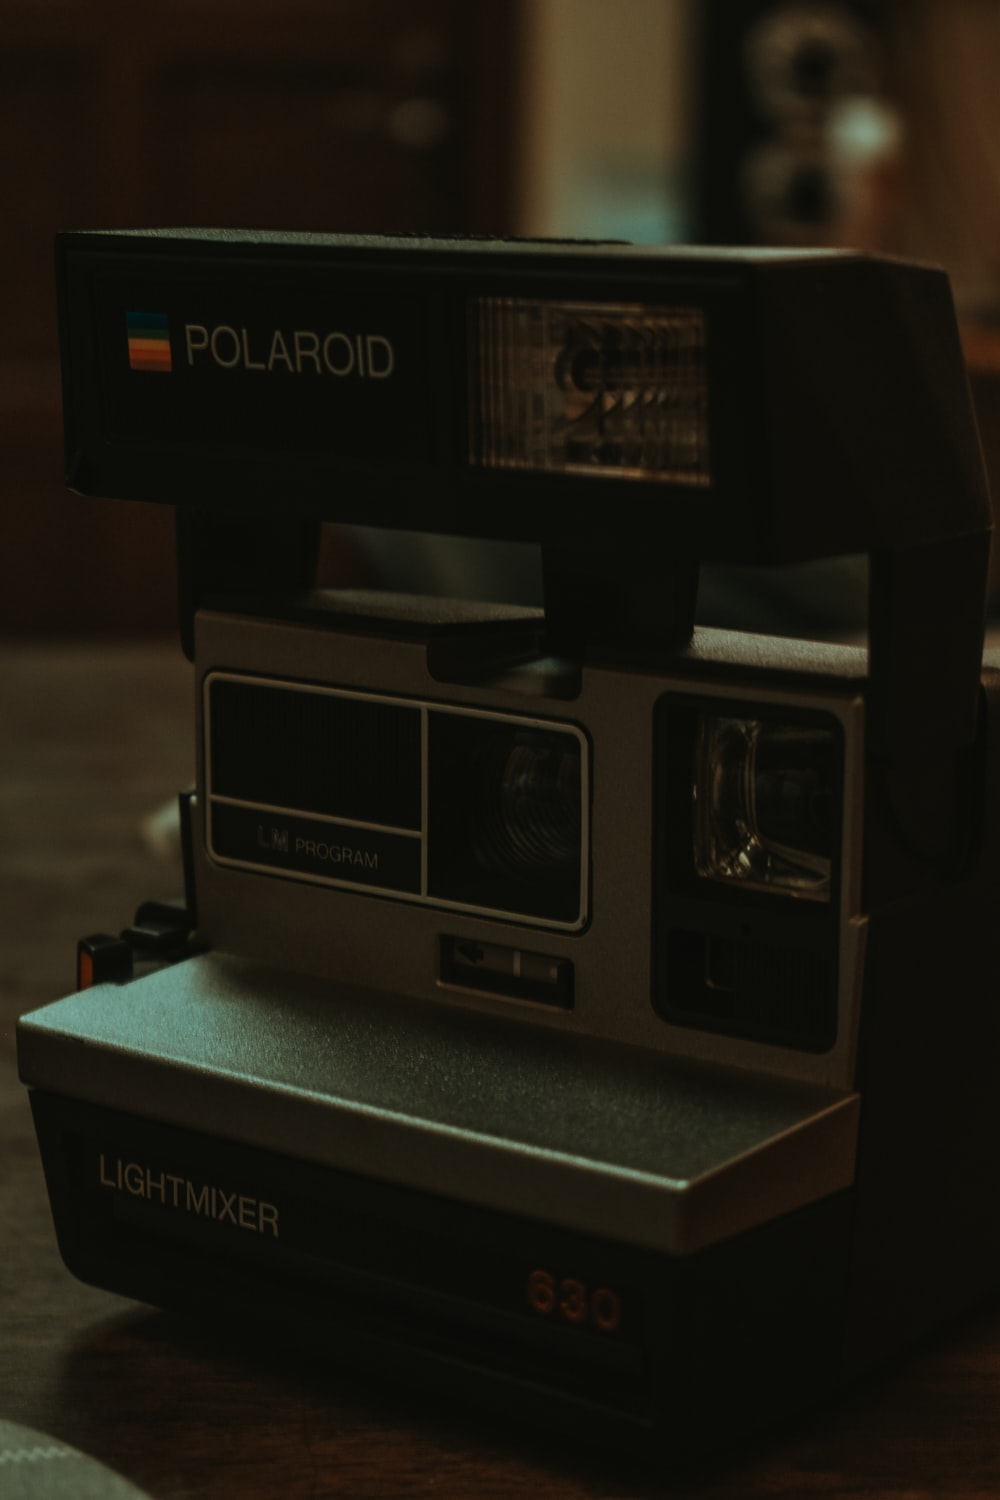 black polaroid instant camera on brown wooden table